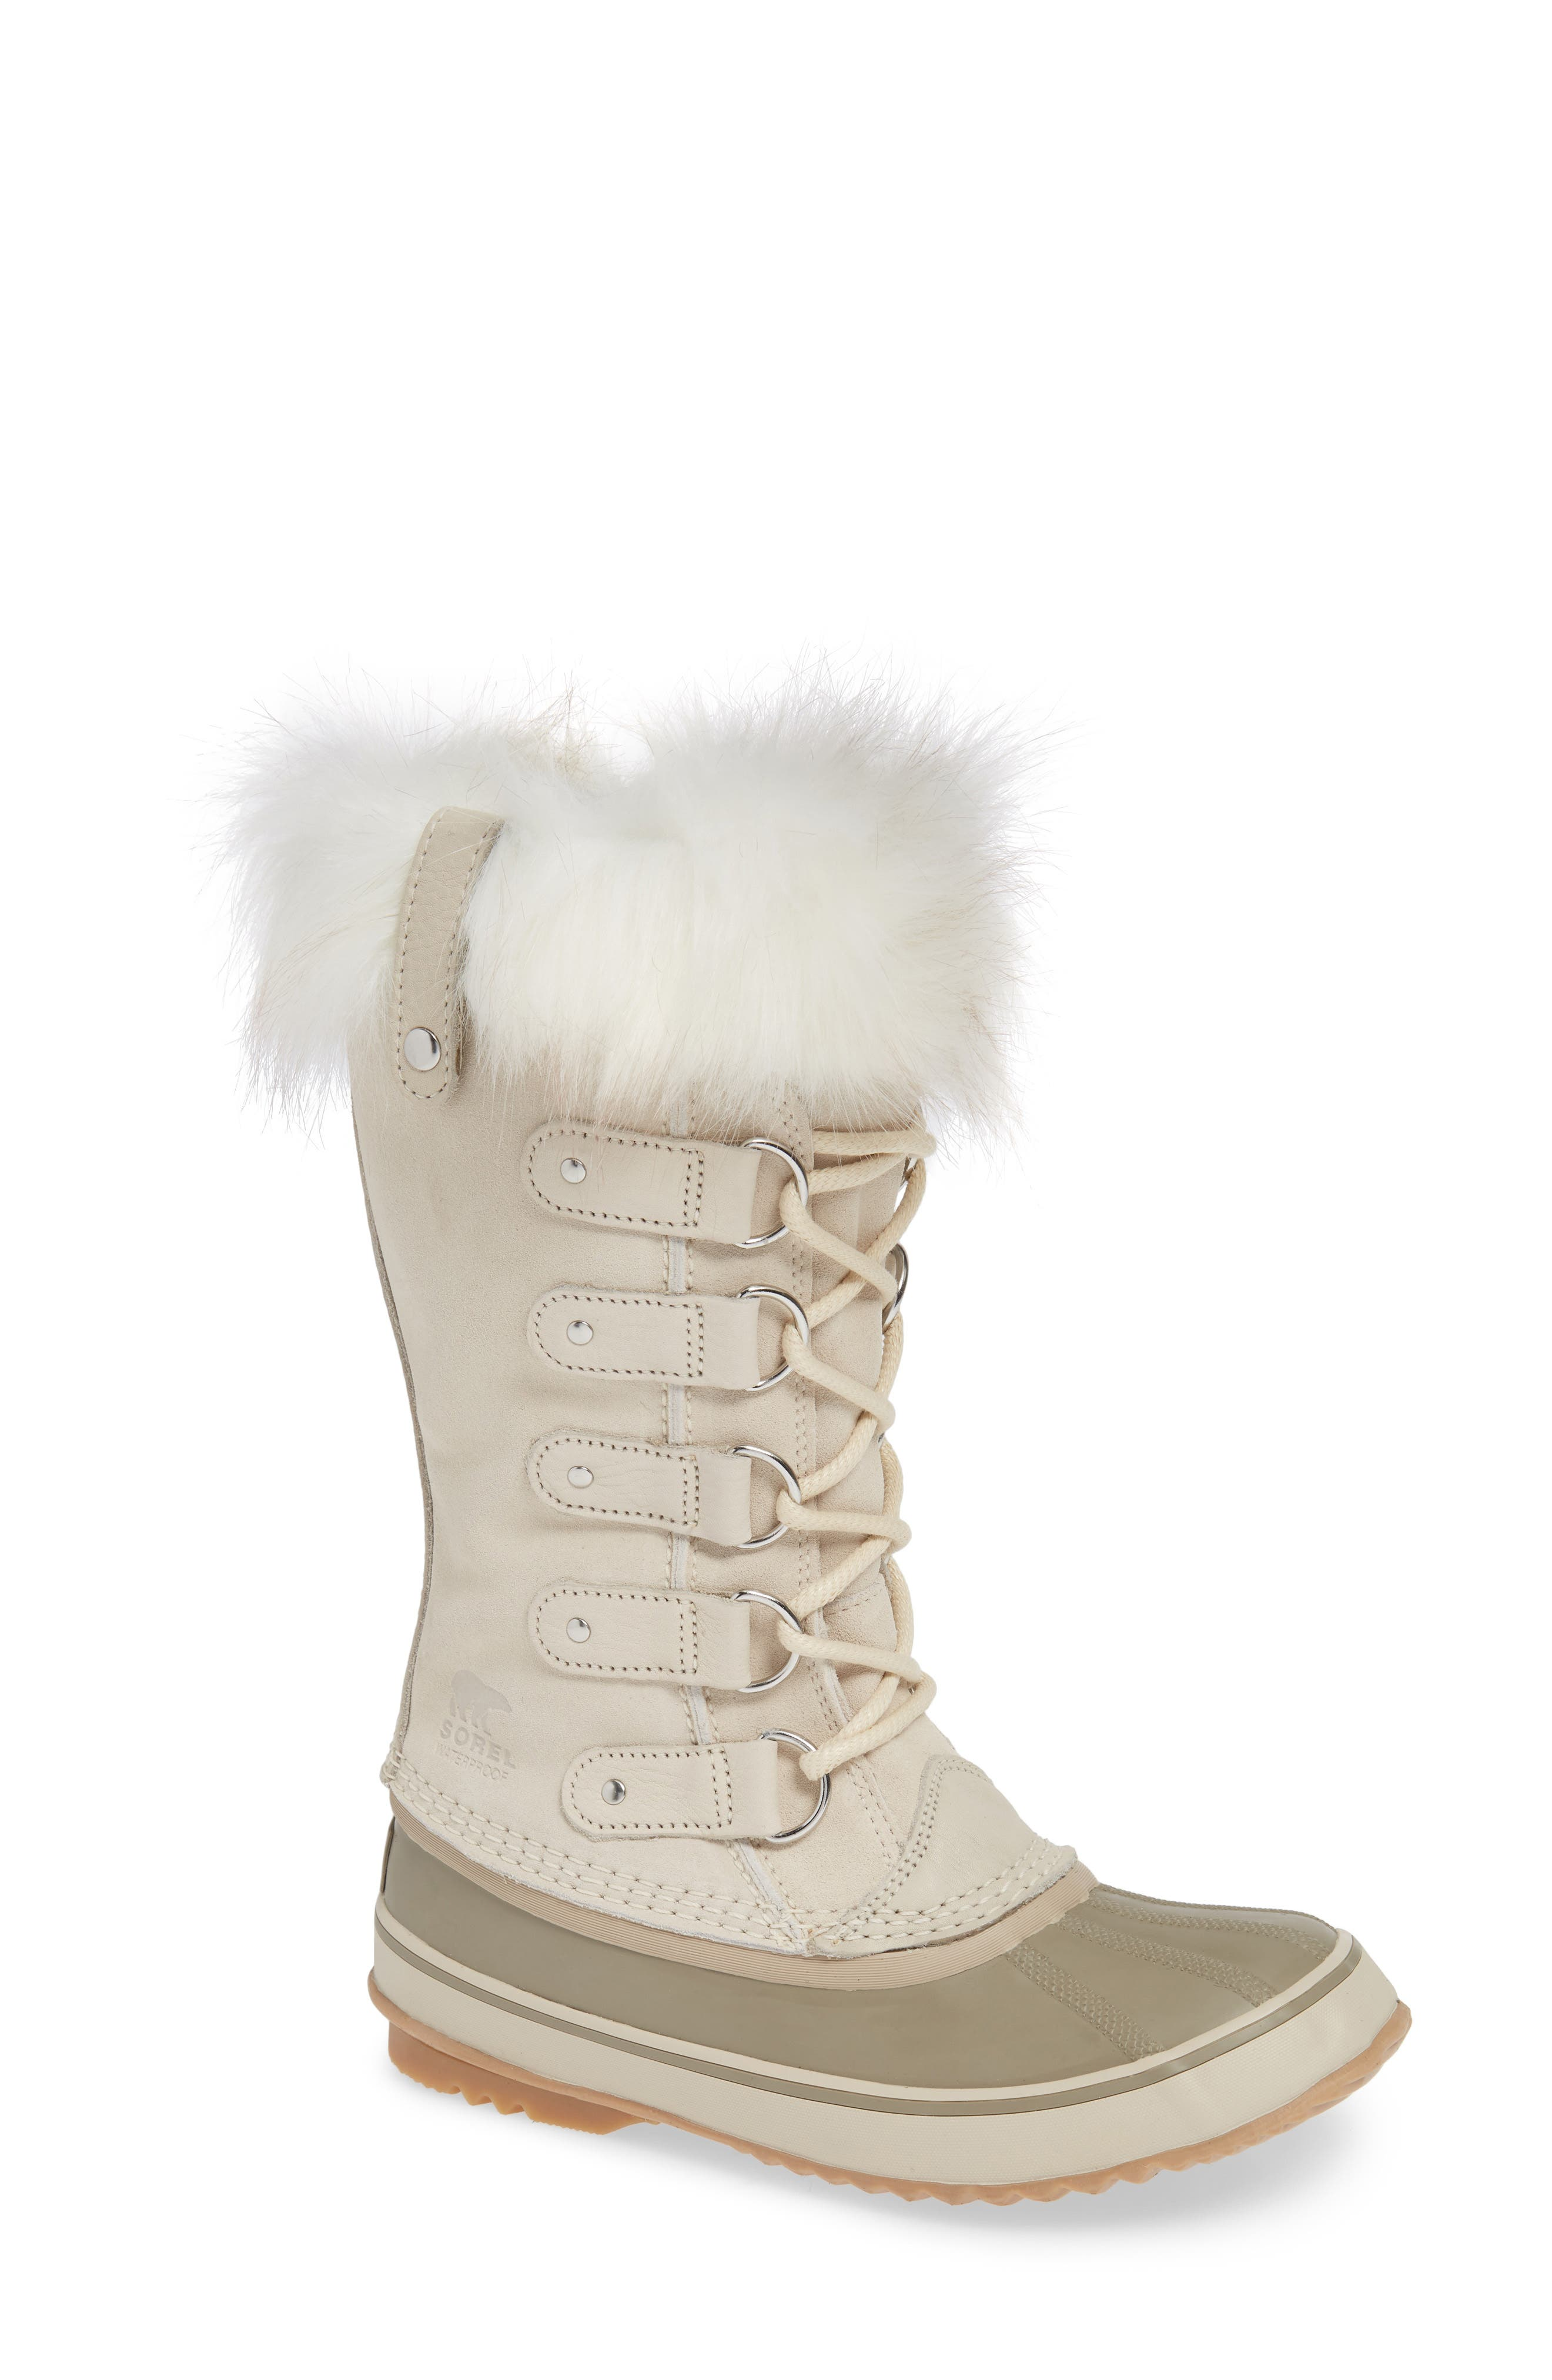 'Joan of Arctic' Waterproof Snow Boot,                             Main thumbnail 1, color,                             FAWN